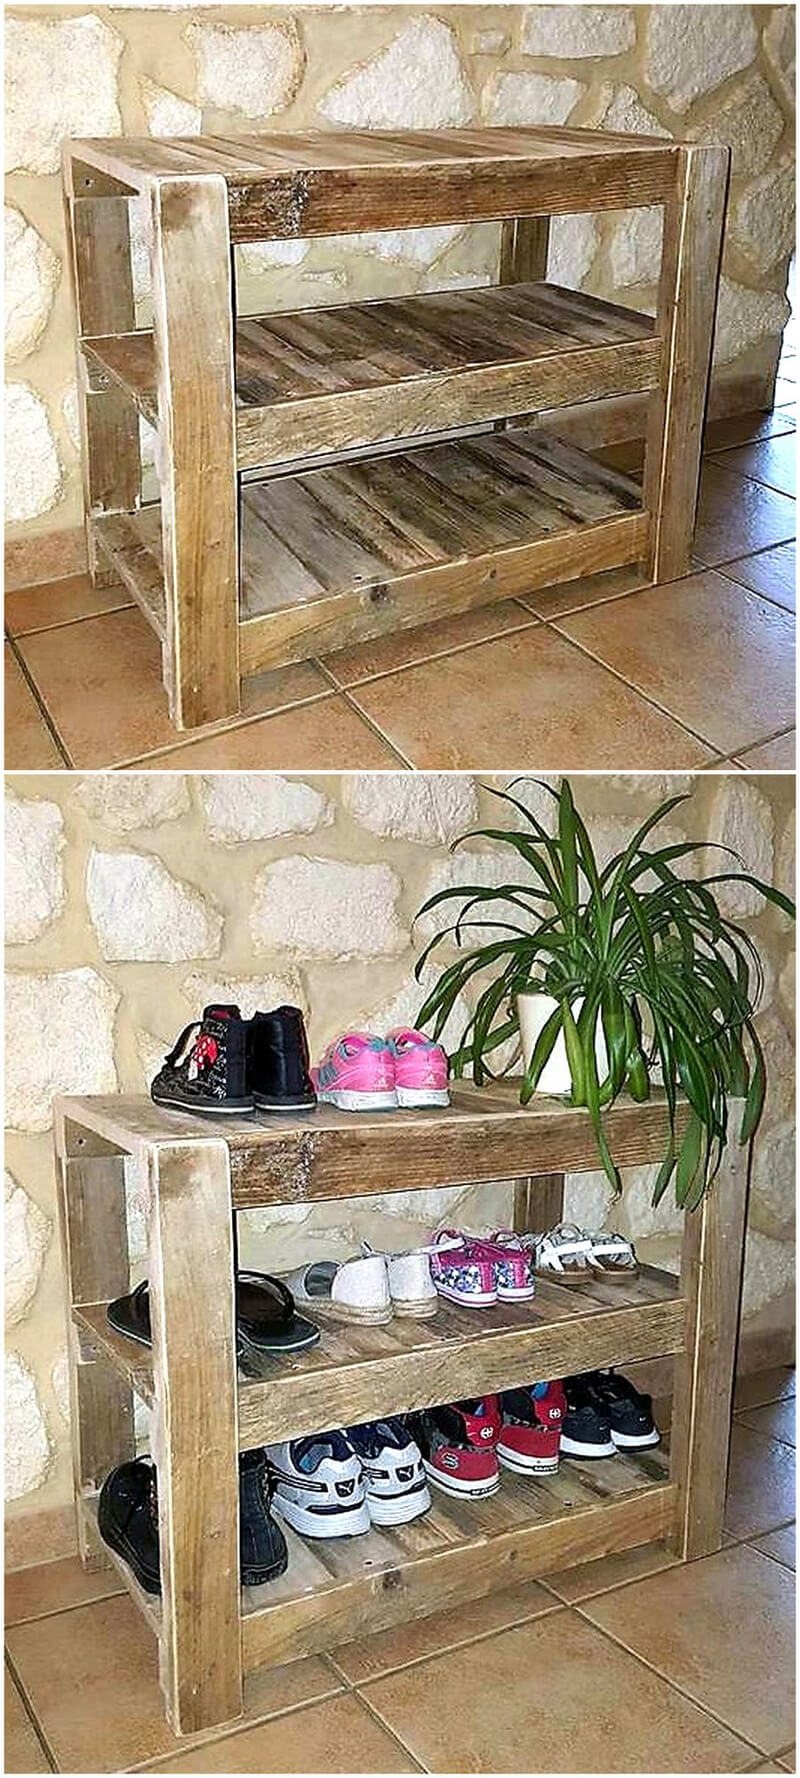 Fresh Ideas for Shipping Pallets Recycling | Wood Pallet ...